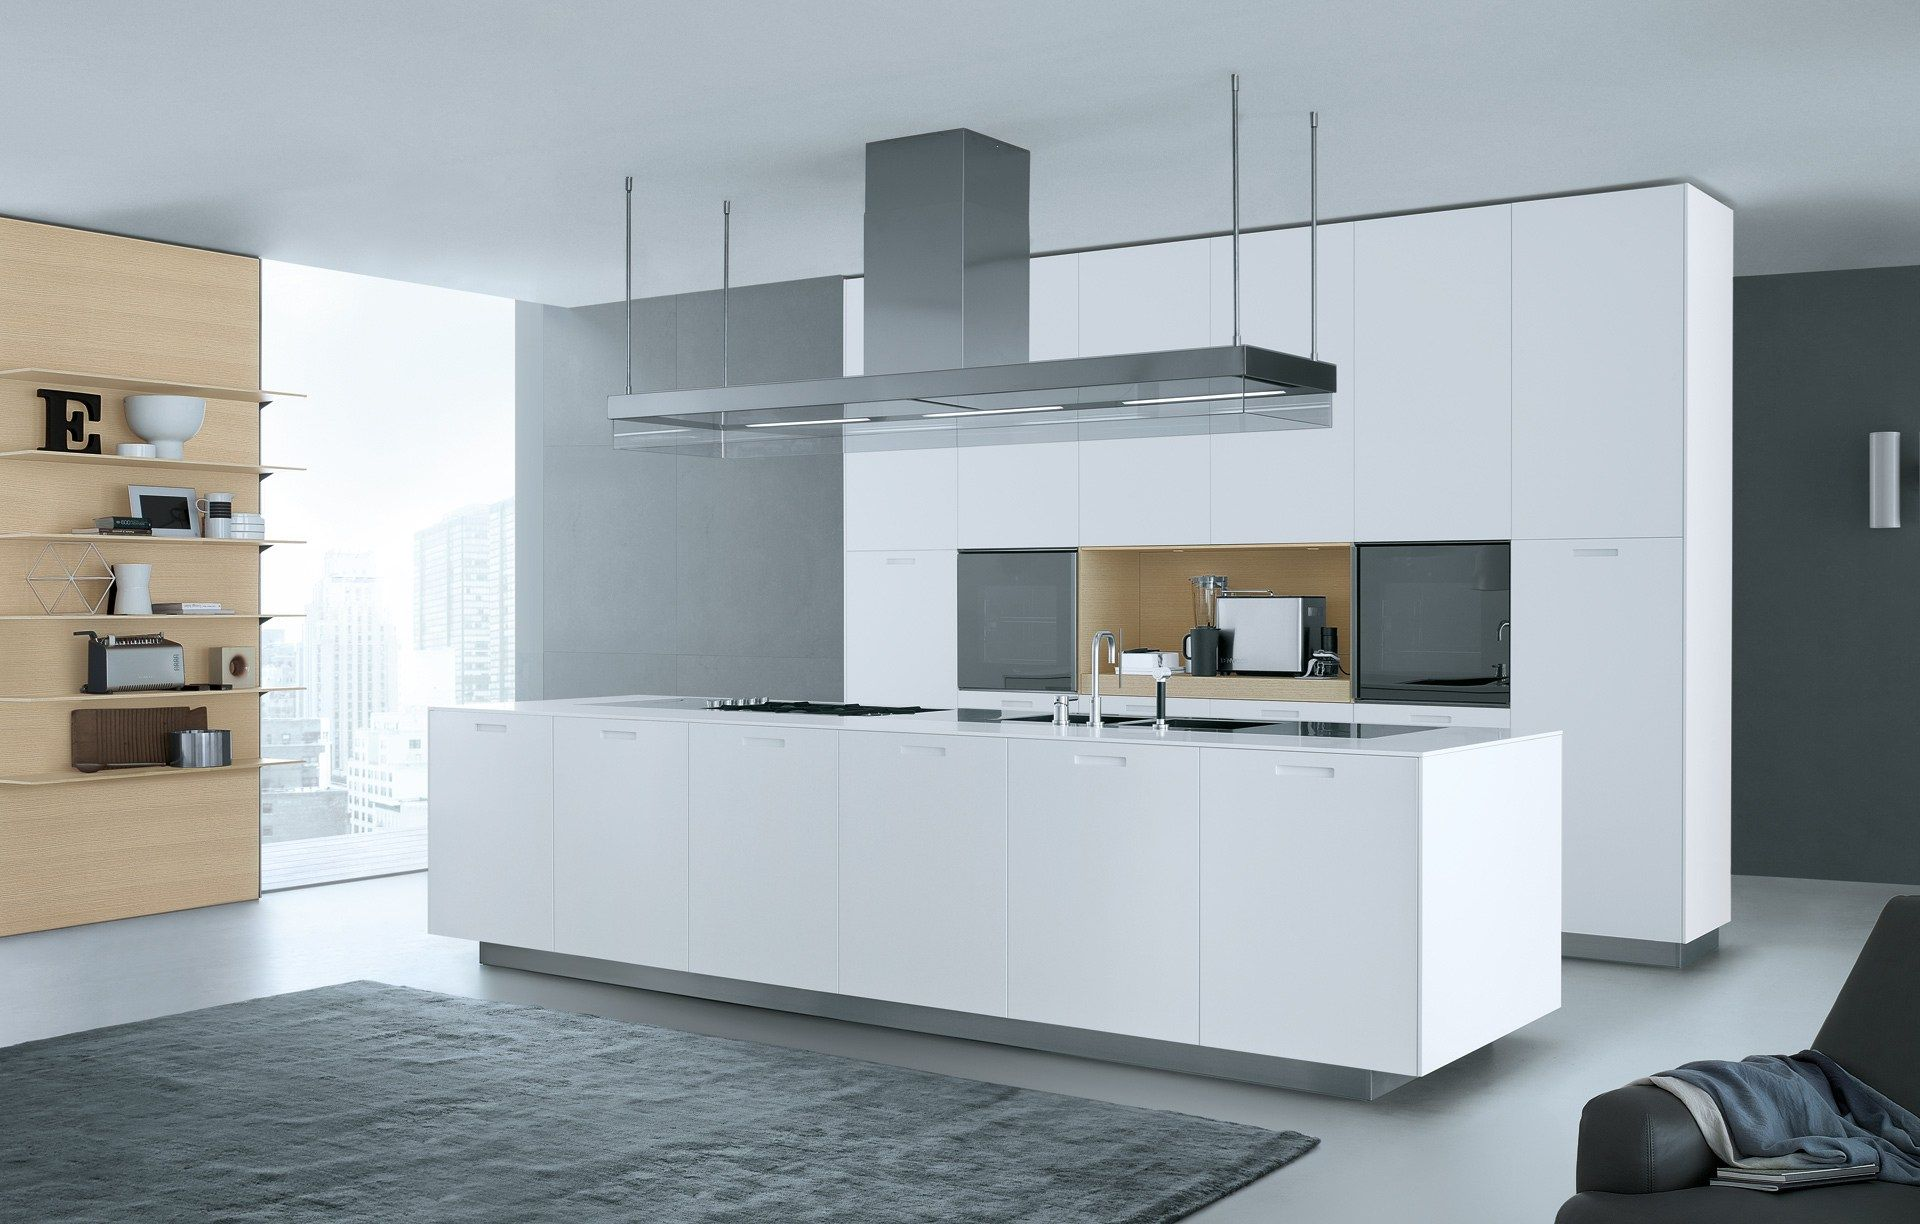 Lacquered linear wooden kitchen KYTON - Varenna by Poliform | keuken ...